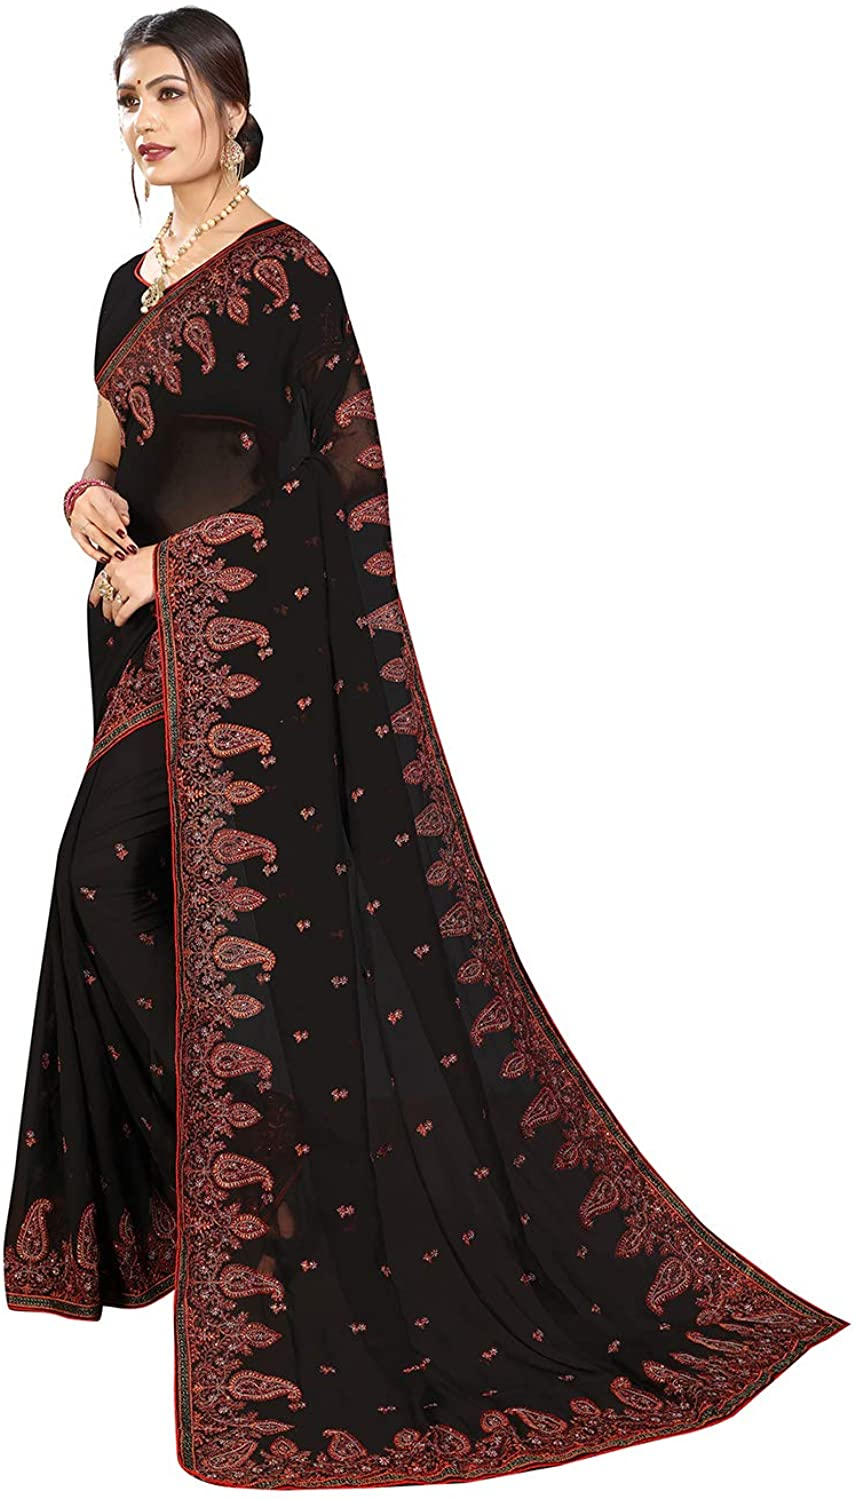 Saree for Women Bollywood Wedding Designer Georgette Sari with Unstitched Blouse. Black